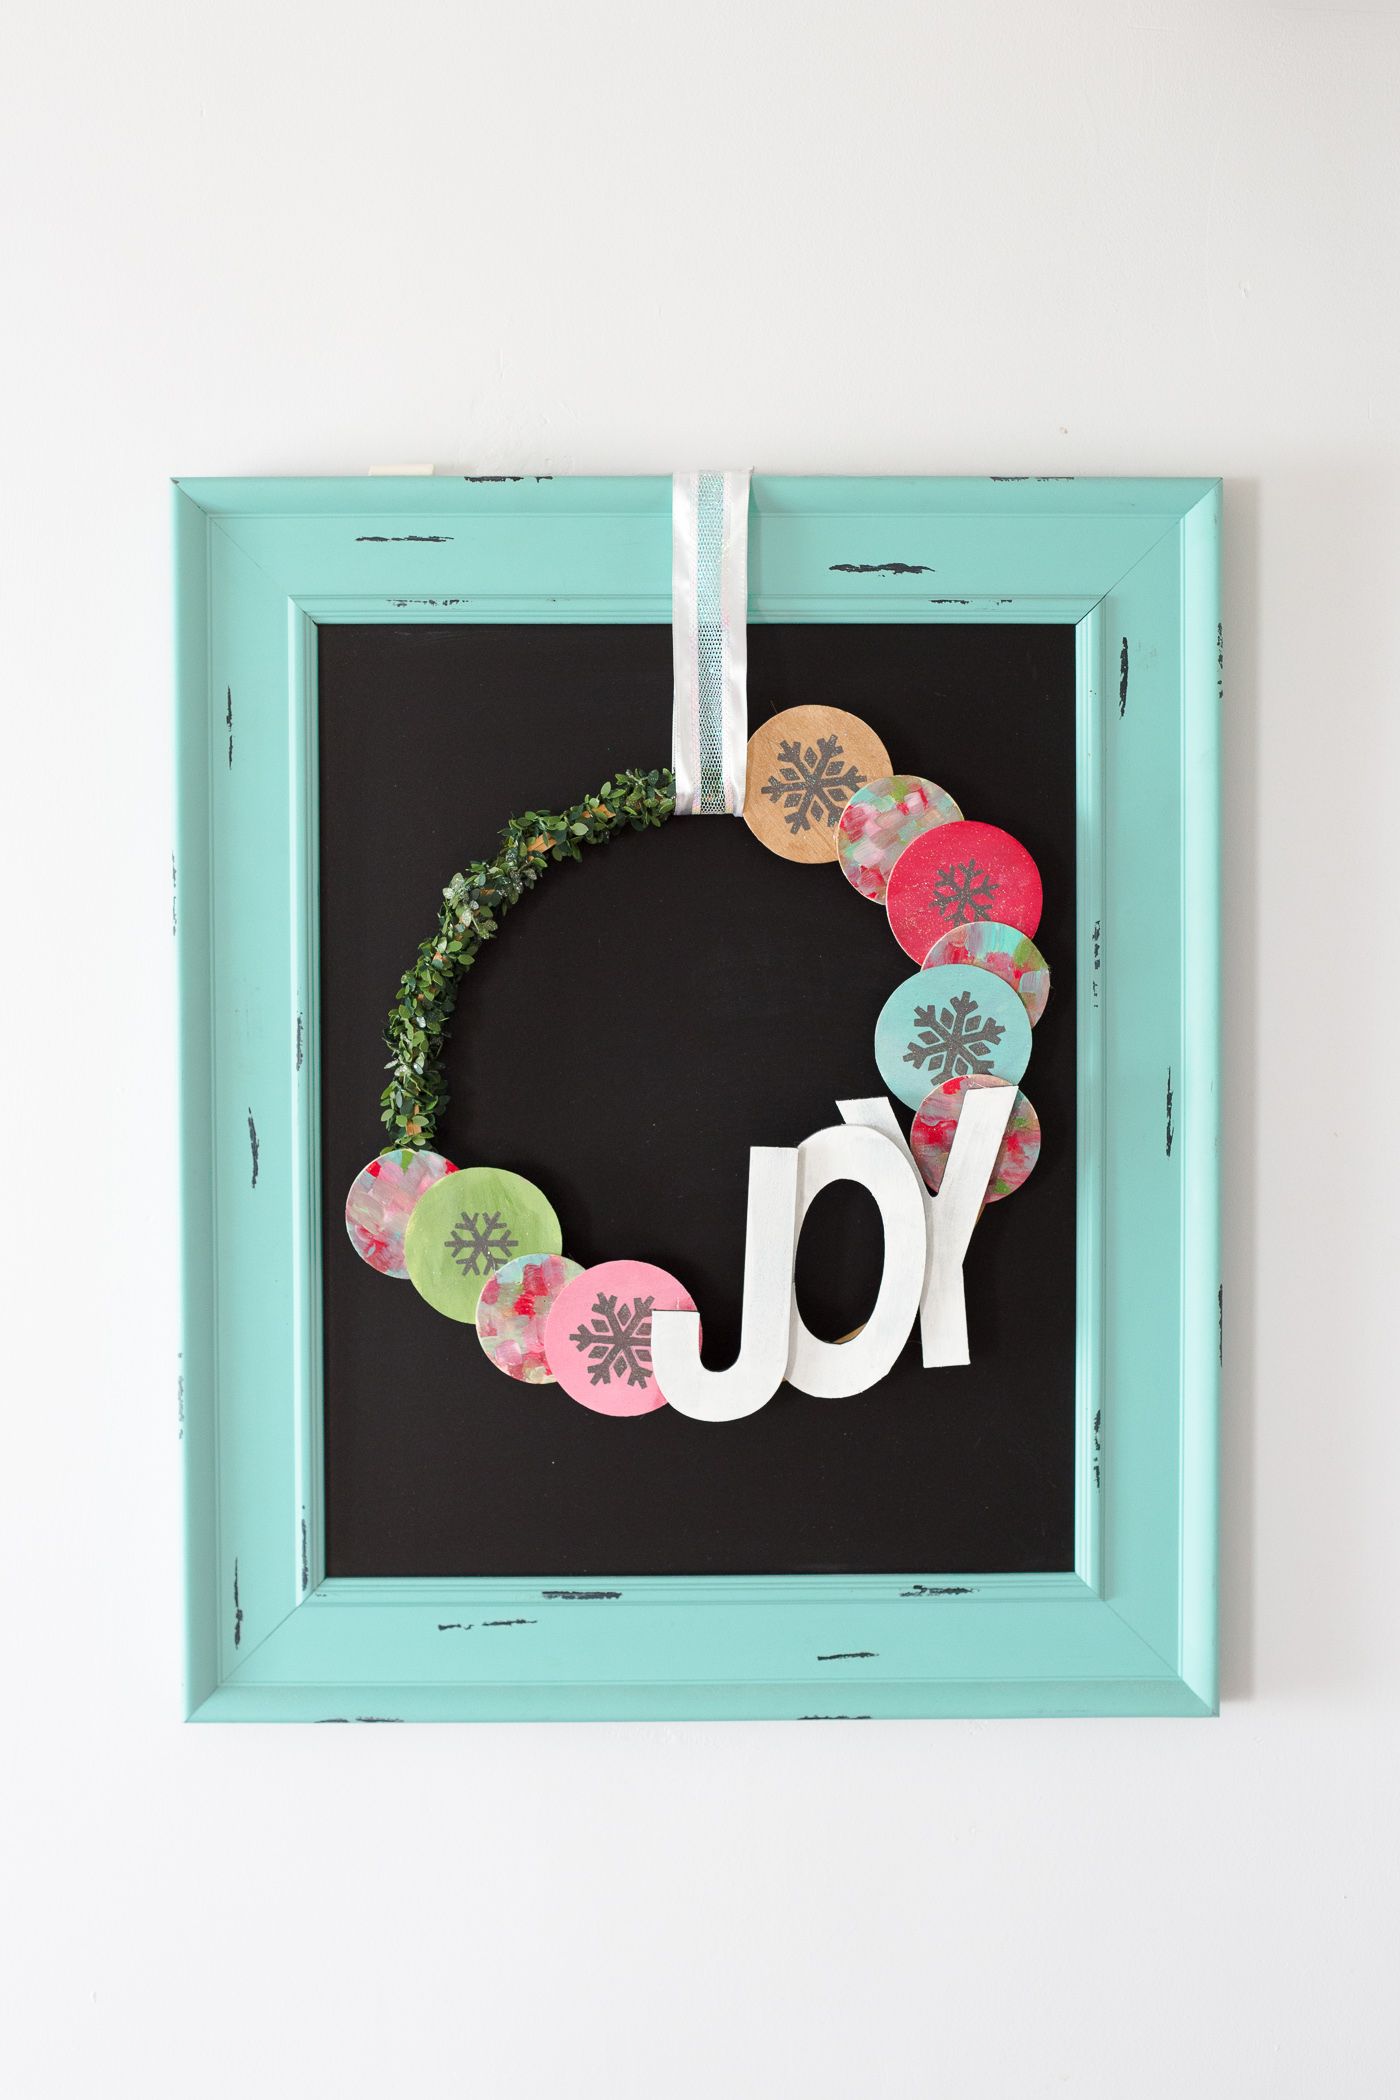 Wooden Snowflake Christmas Wreath: a non traditional Christmas wreath with pops of color, glitter and greenery! Mix and match the colors for any Christmas decor.